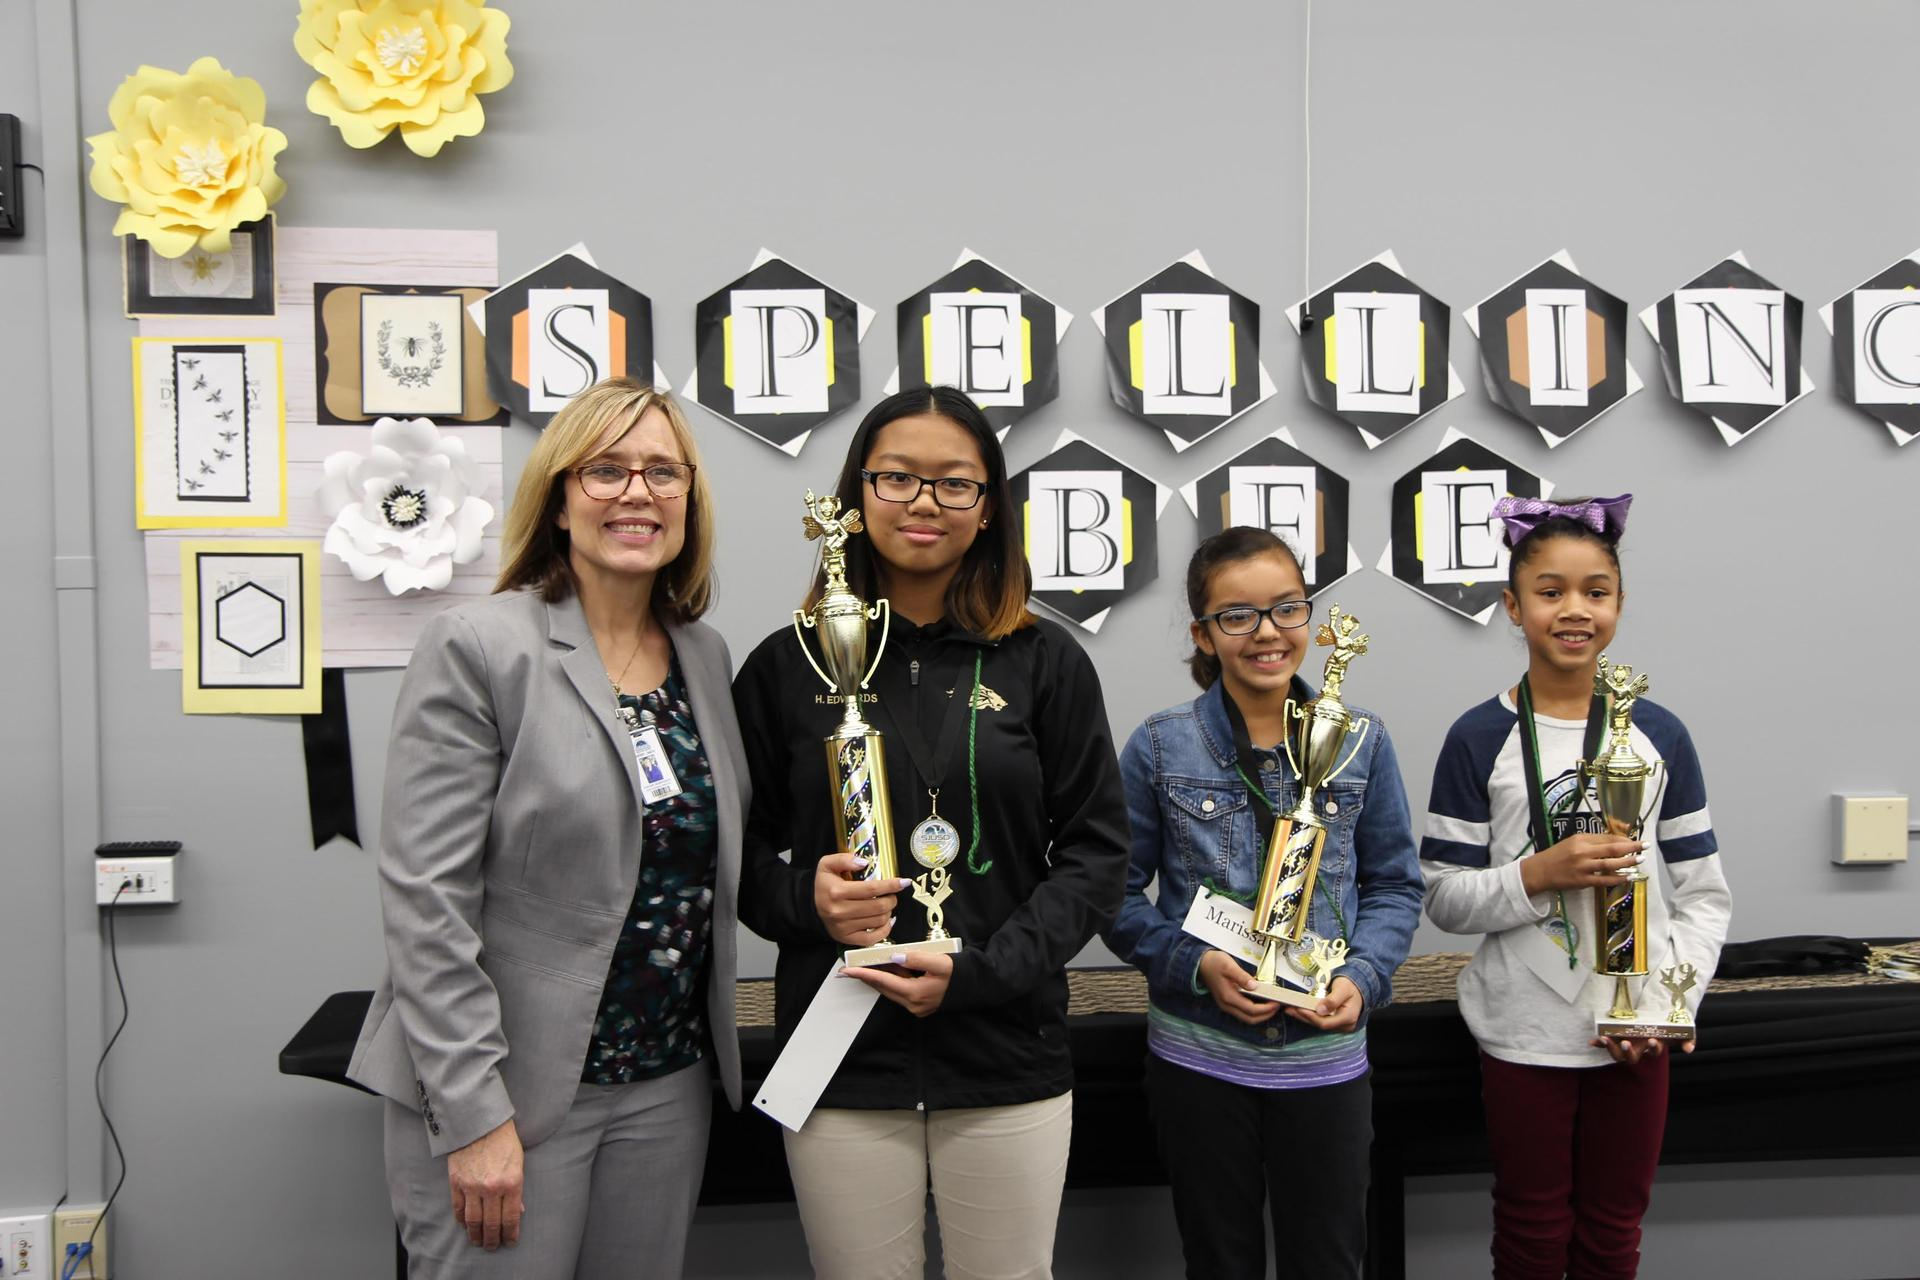 Assistant Superintendent Sherry Smith with our winners